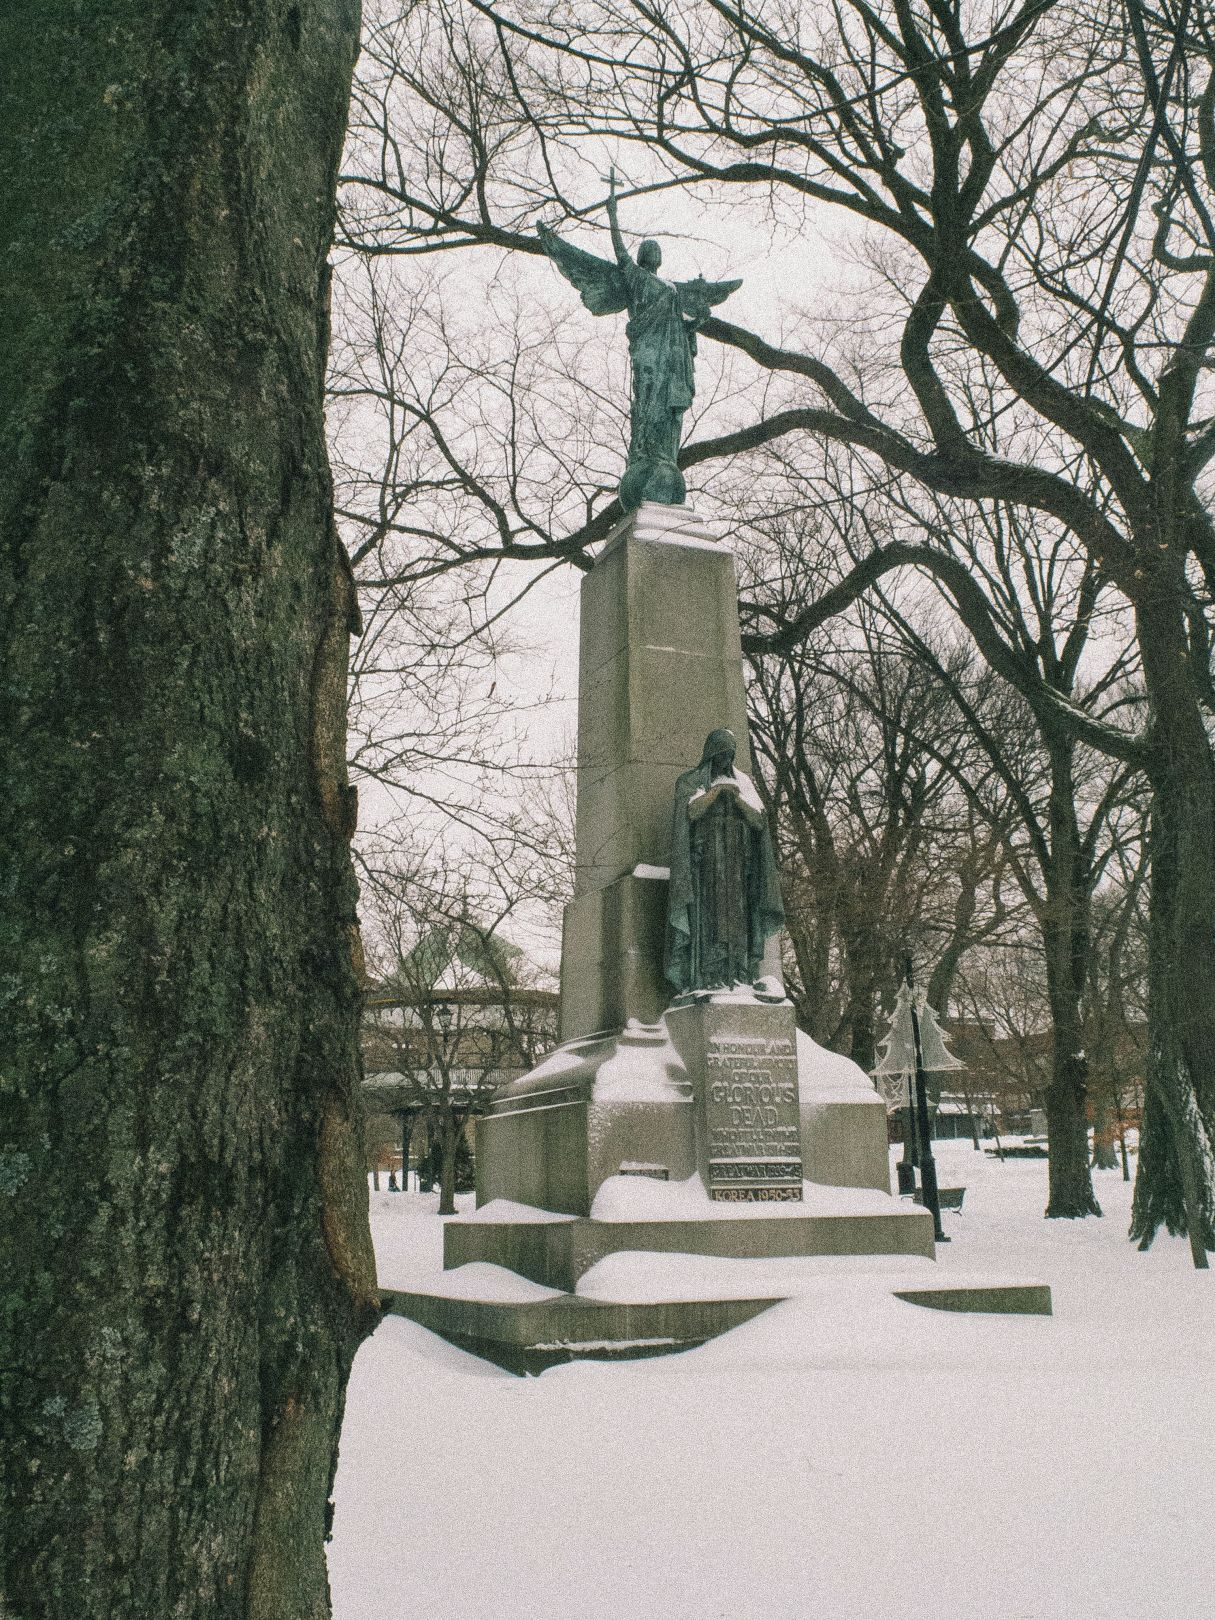 A photo of The Glorious Dead Statue in Kings Square Snow Saint John Photograph